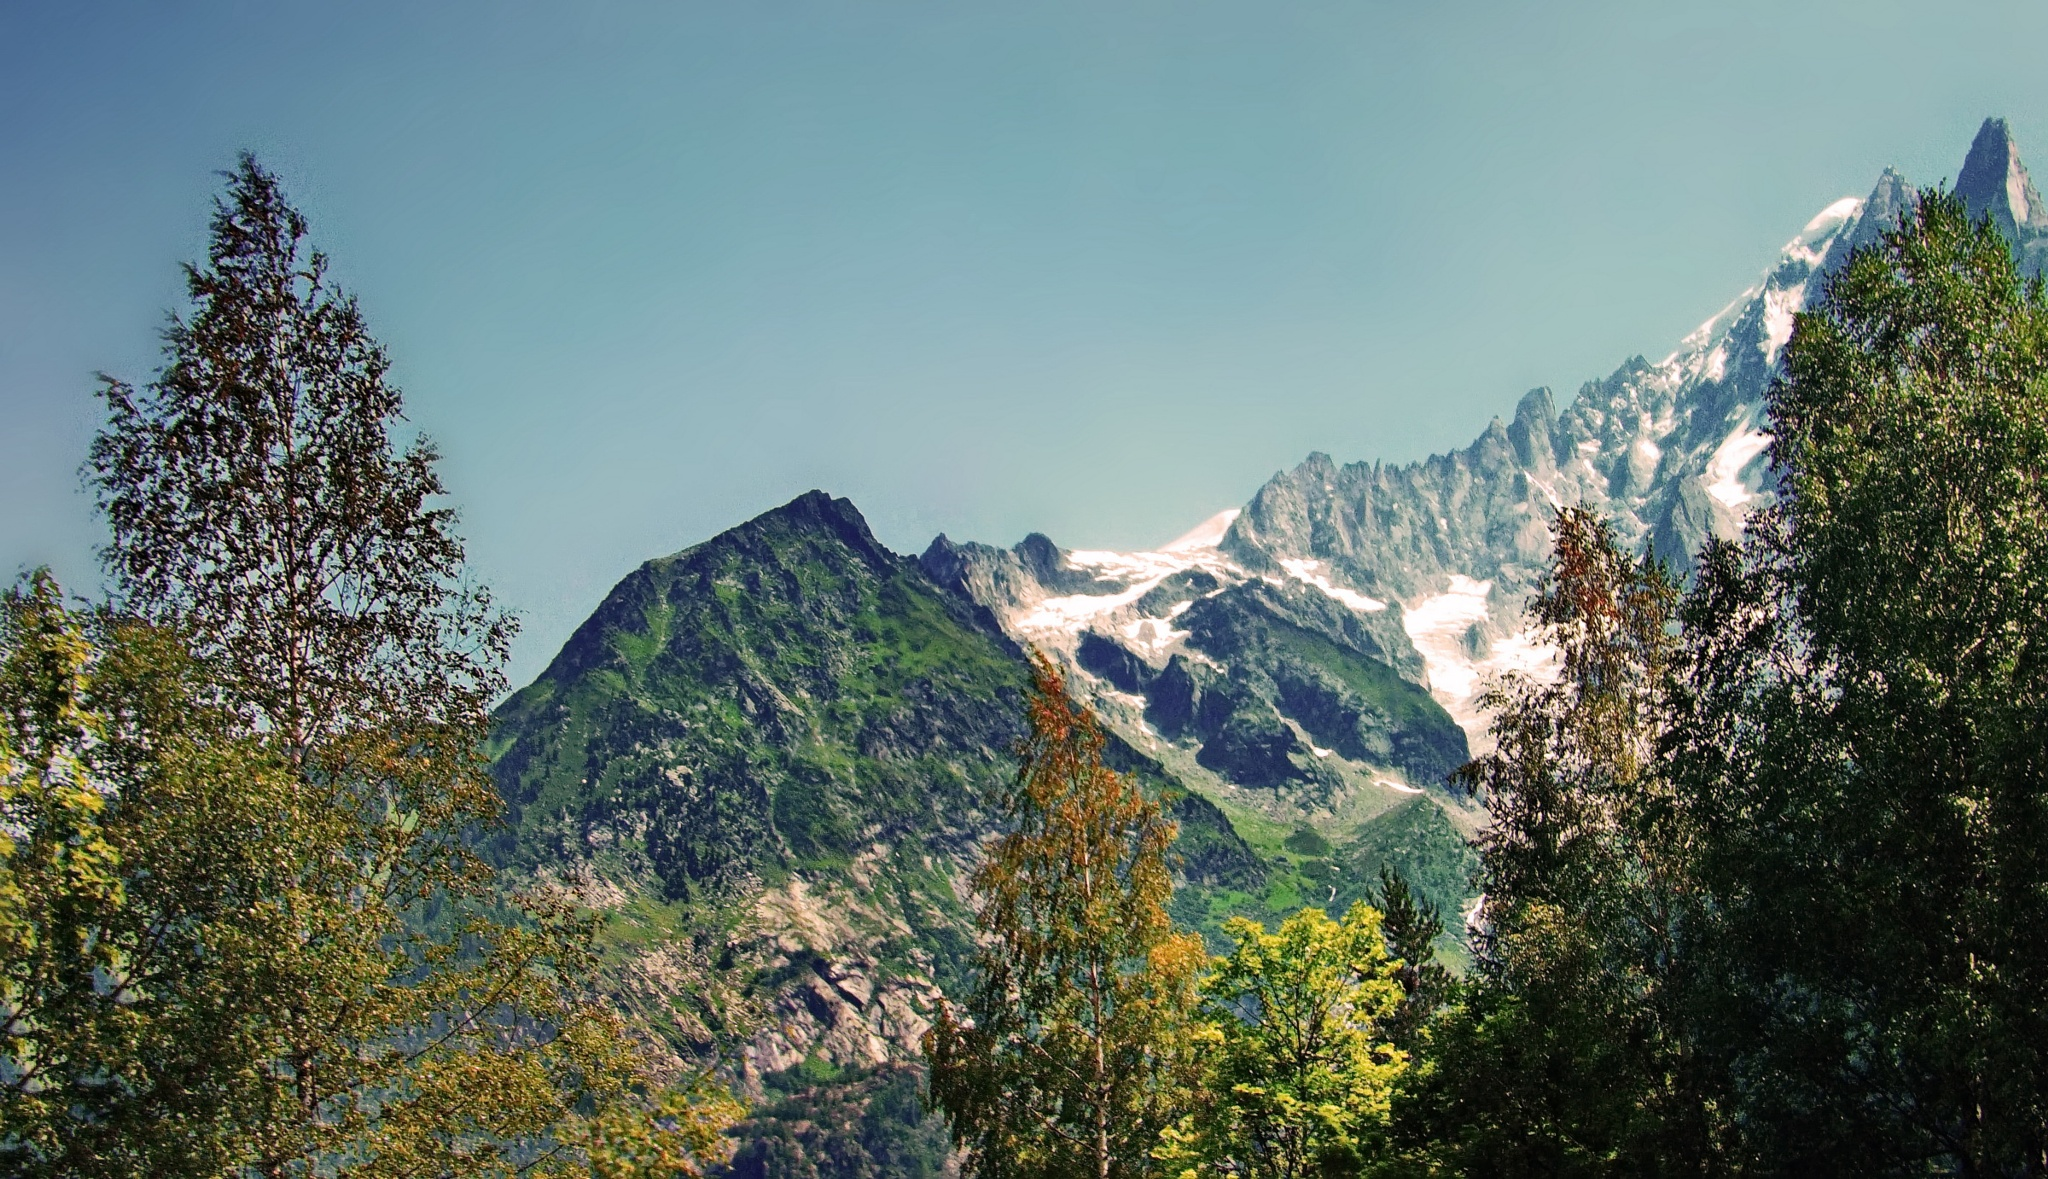 Les Alps(2) by Milan